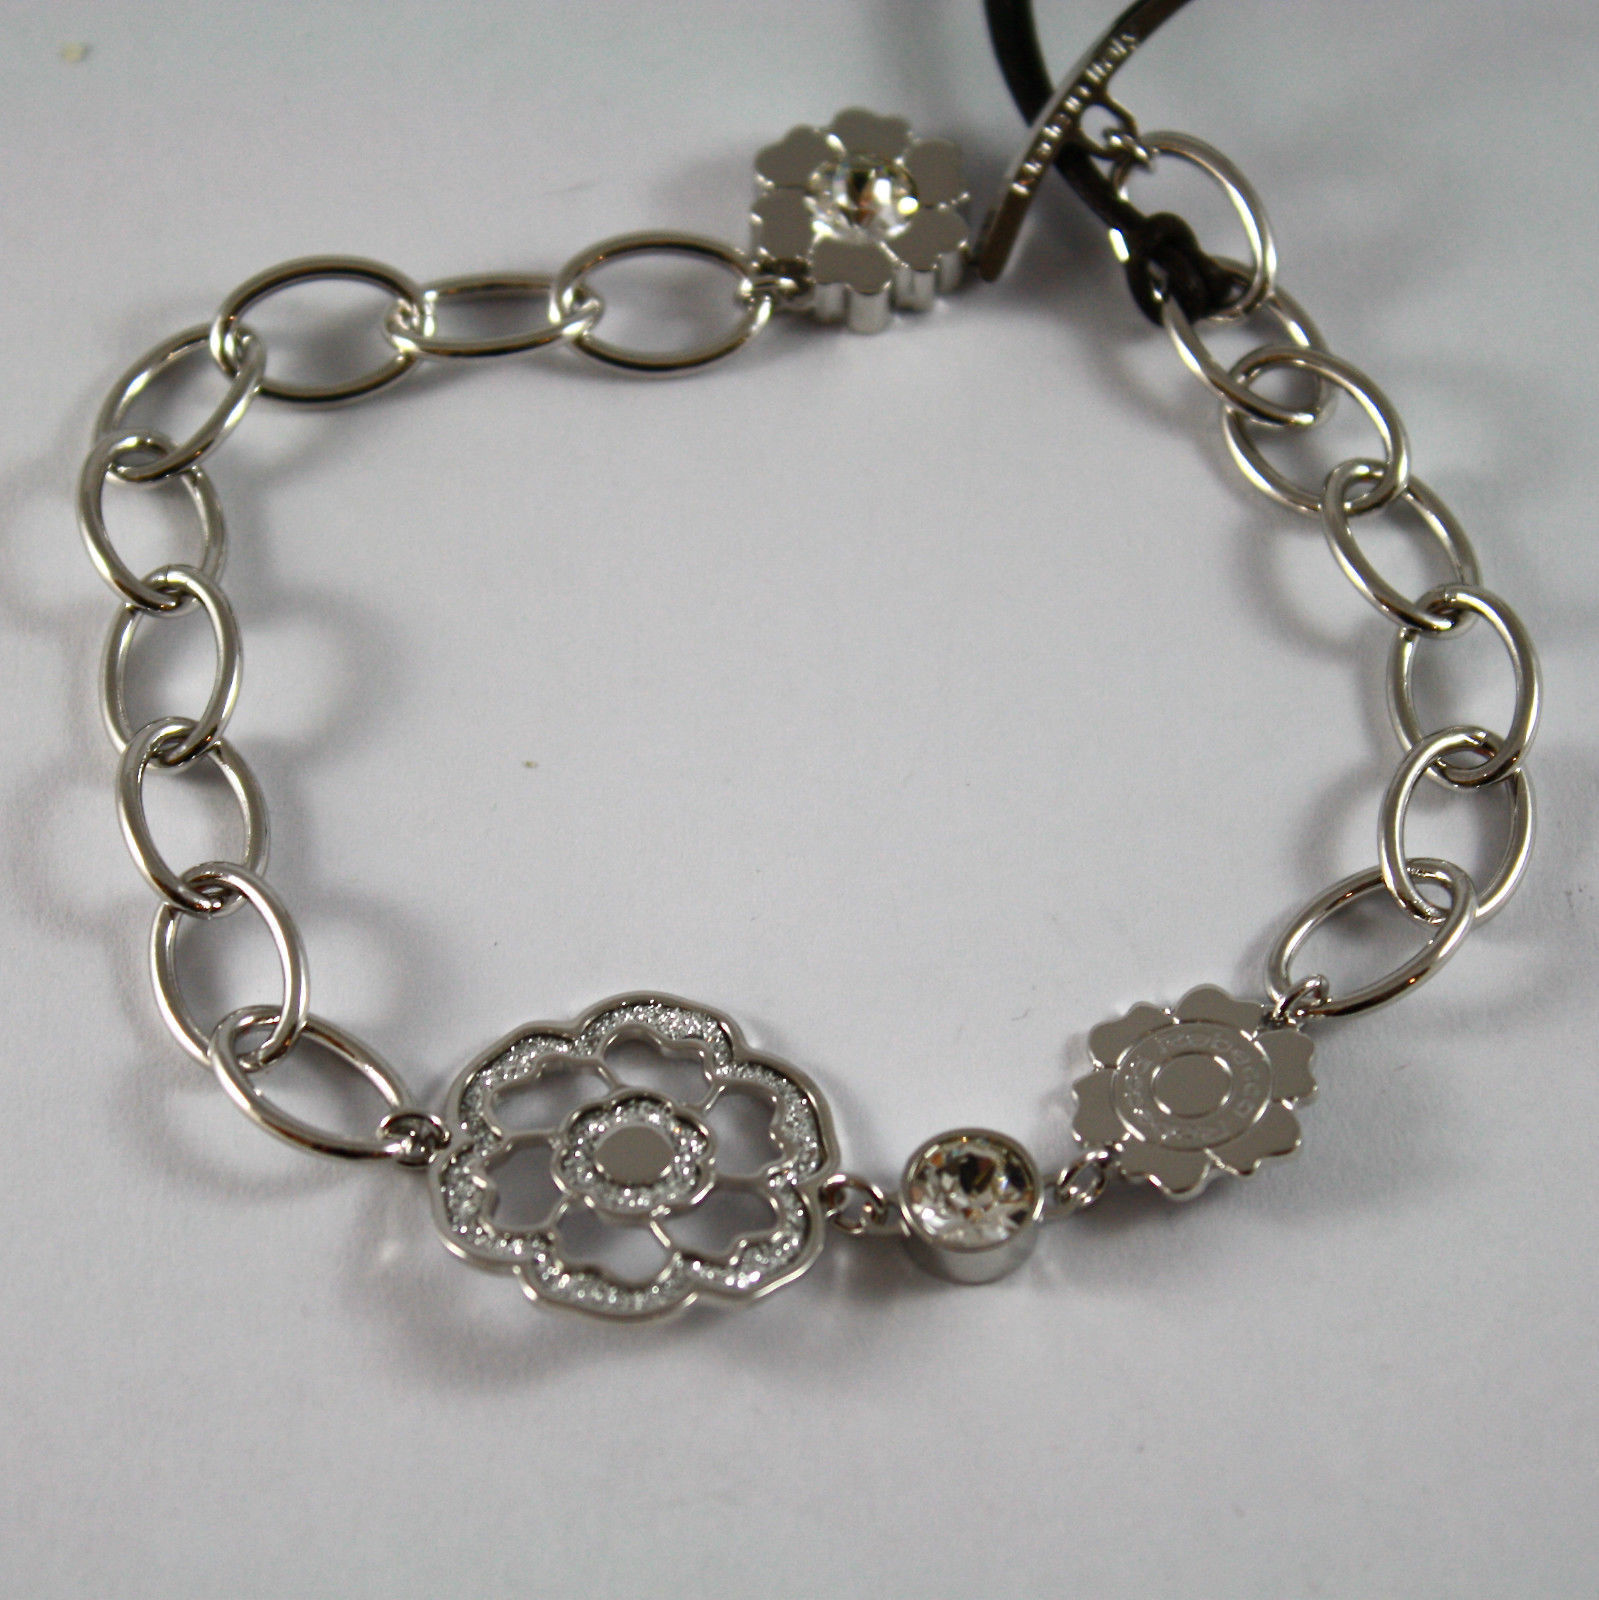 RHODIUM-PL​ATED BRONZE REBECCA BRACELET WITH ROSE BPSBBB08 LENGTH 7.87 INCHES